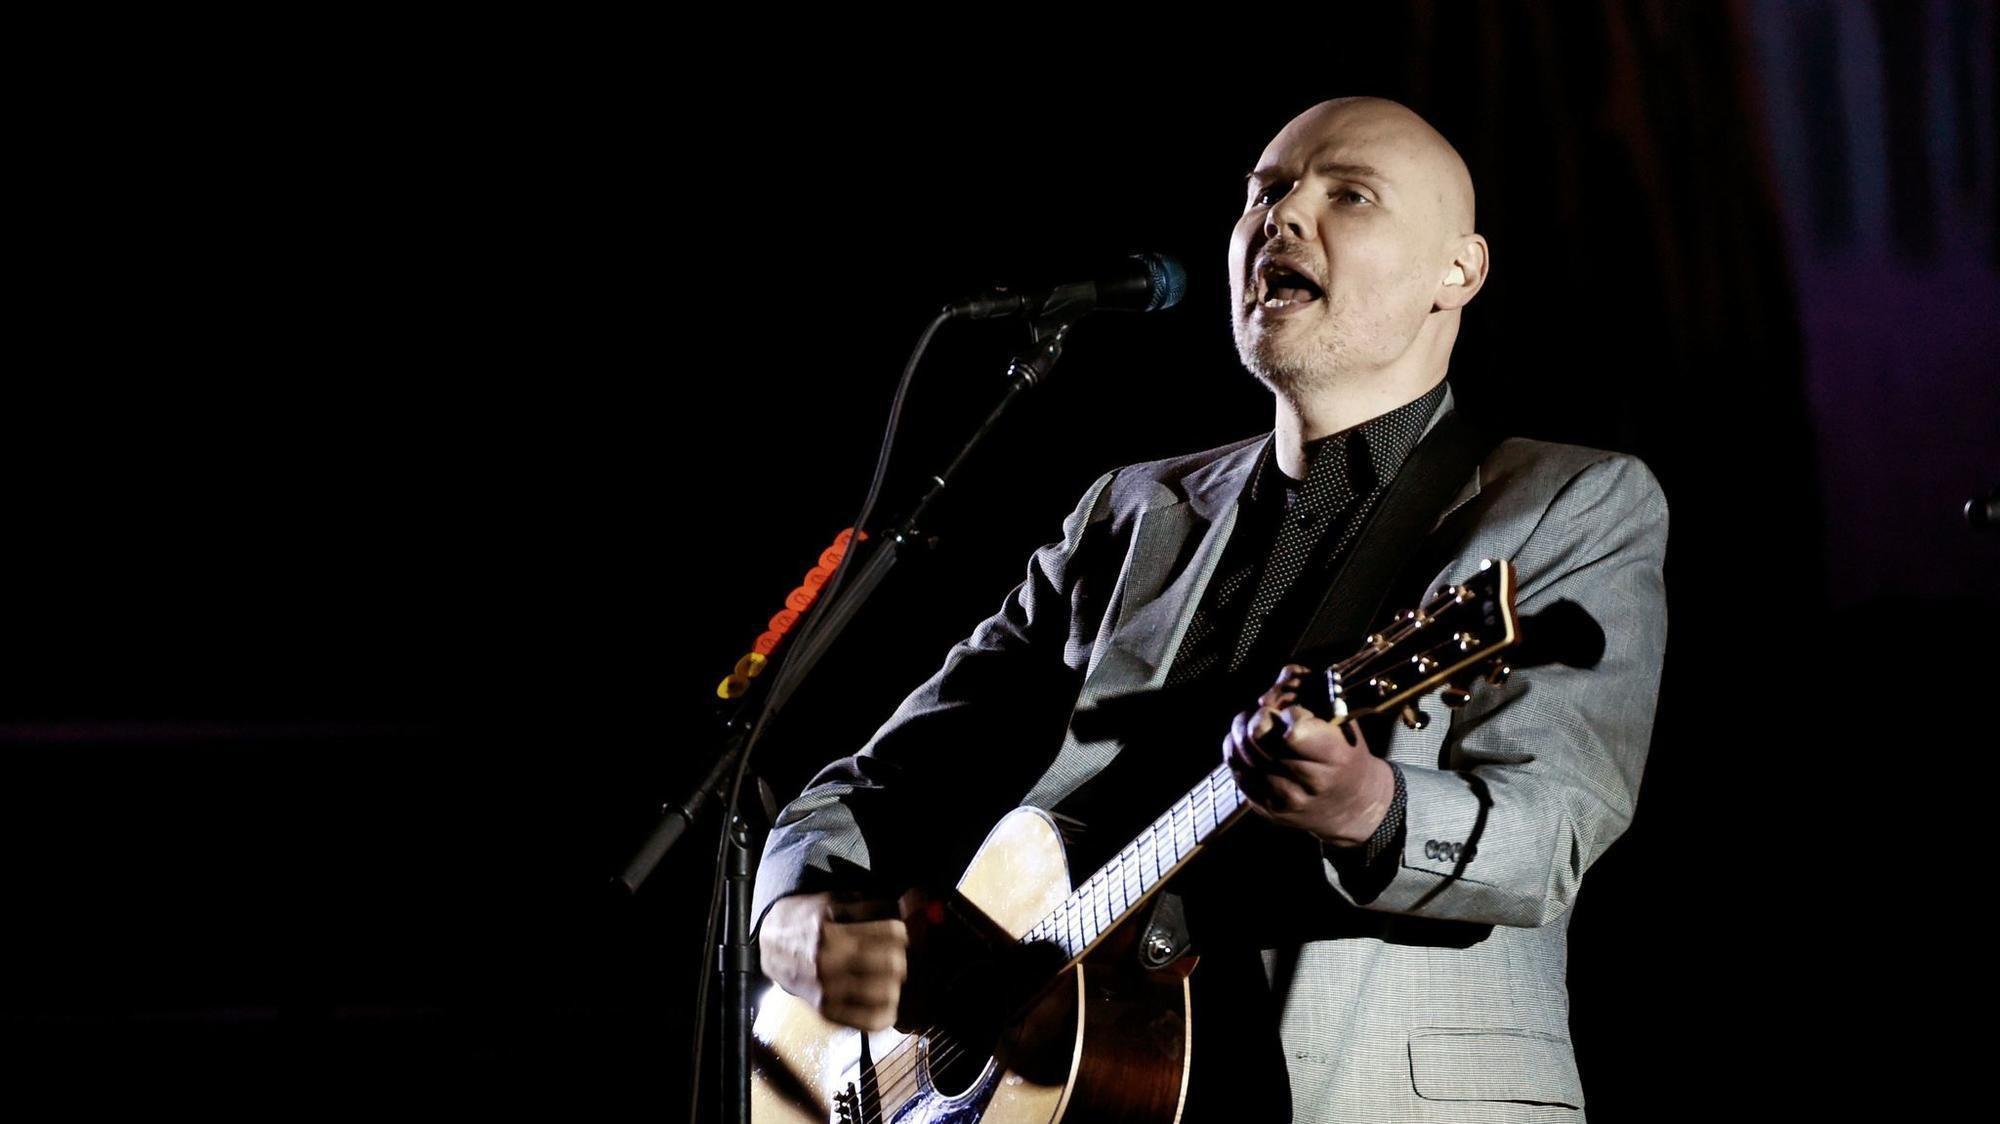 Smashing Pumpkins reunion tour comes to Chicago in August